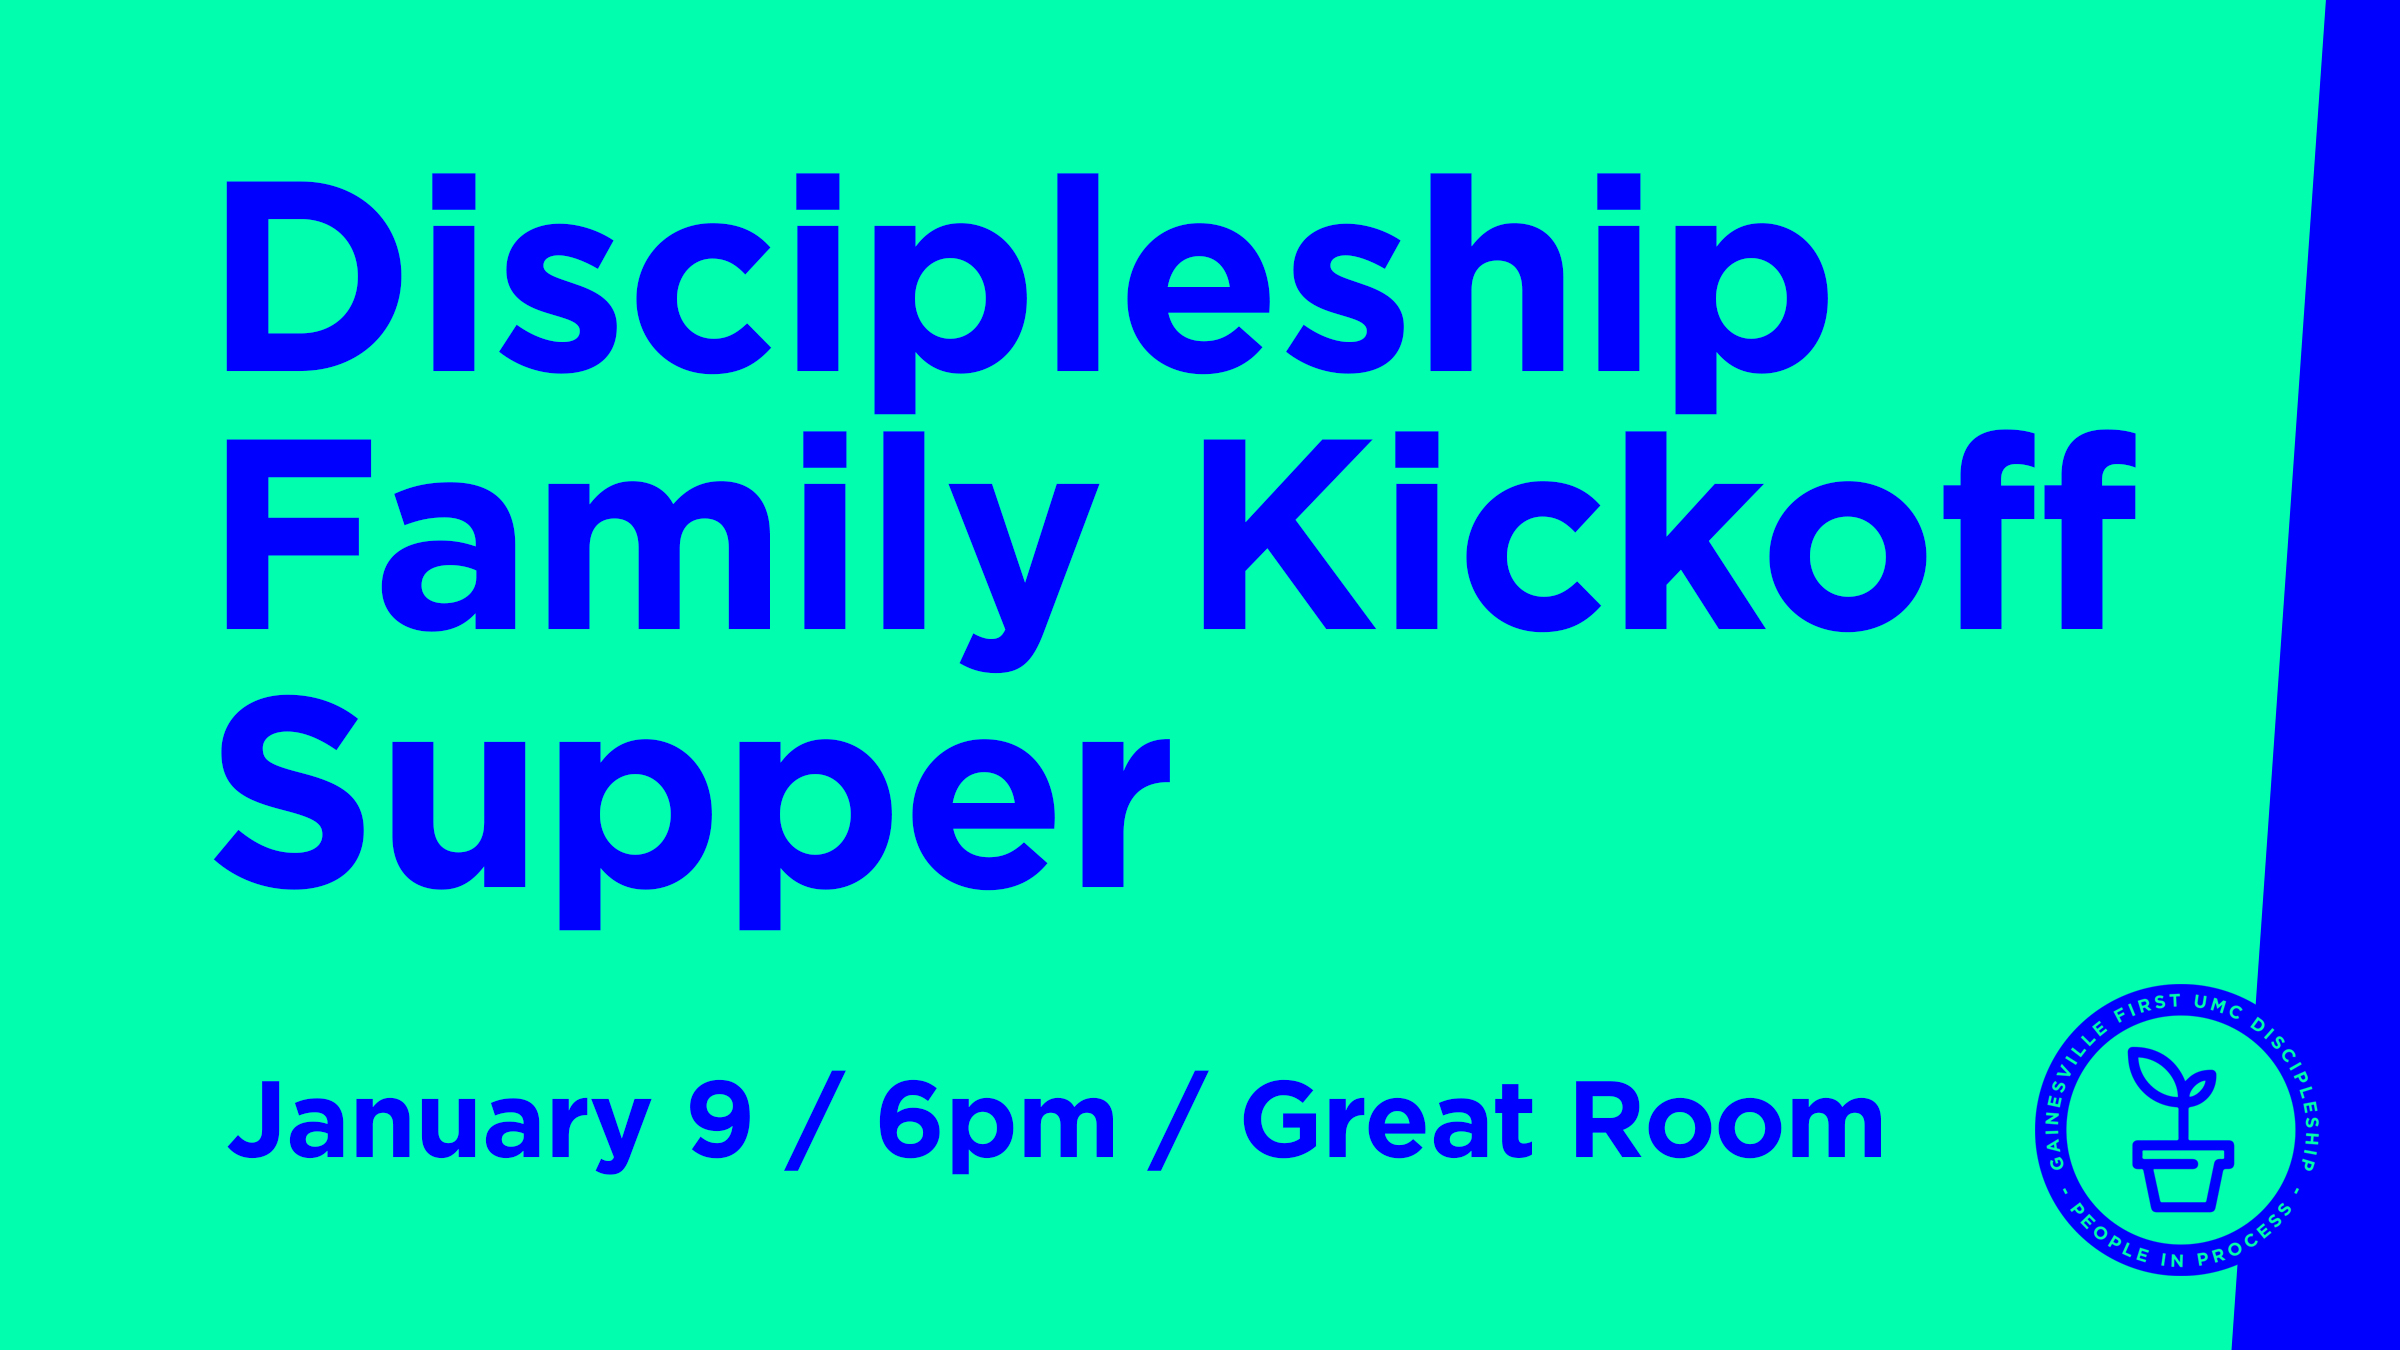 screen_discipleship_family_kickoff_january_2019.jpg